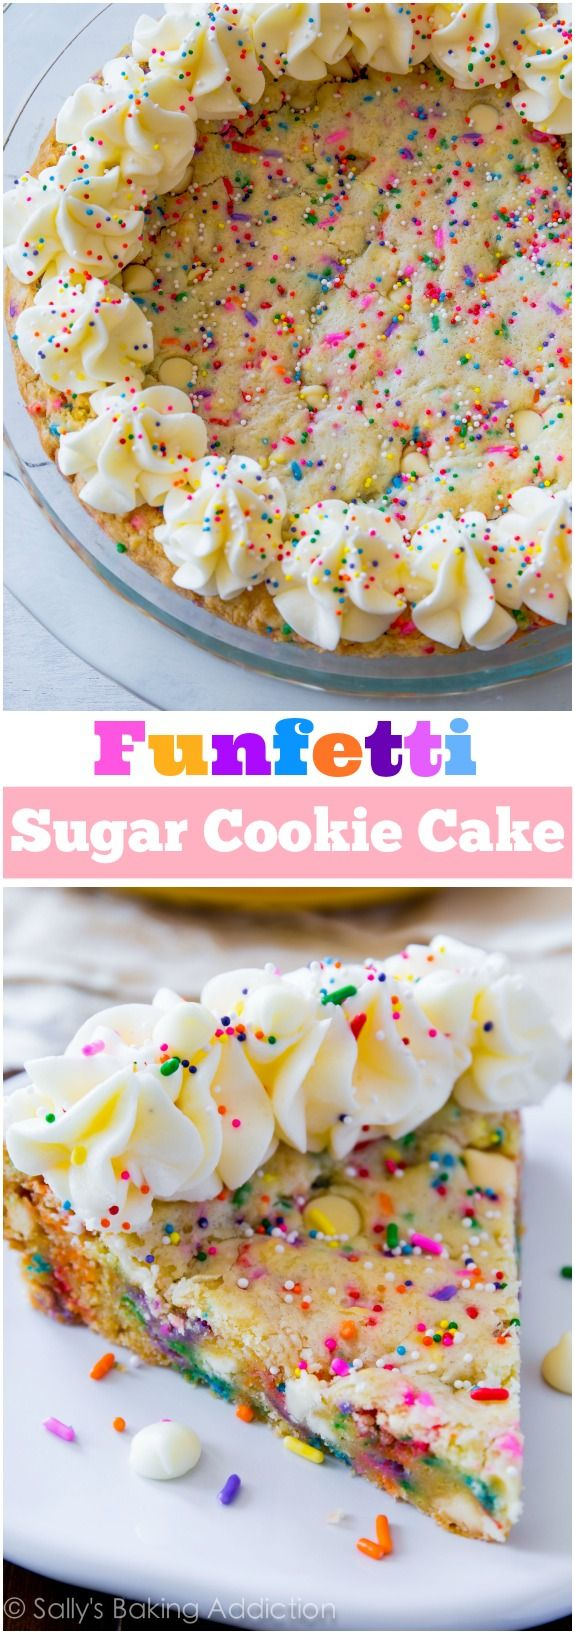 This simple funfetti sugar cookie cake recipe is a wonderful alternative to birthday cake or a batch of sugar cookies! @sallybakeblog